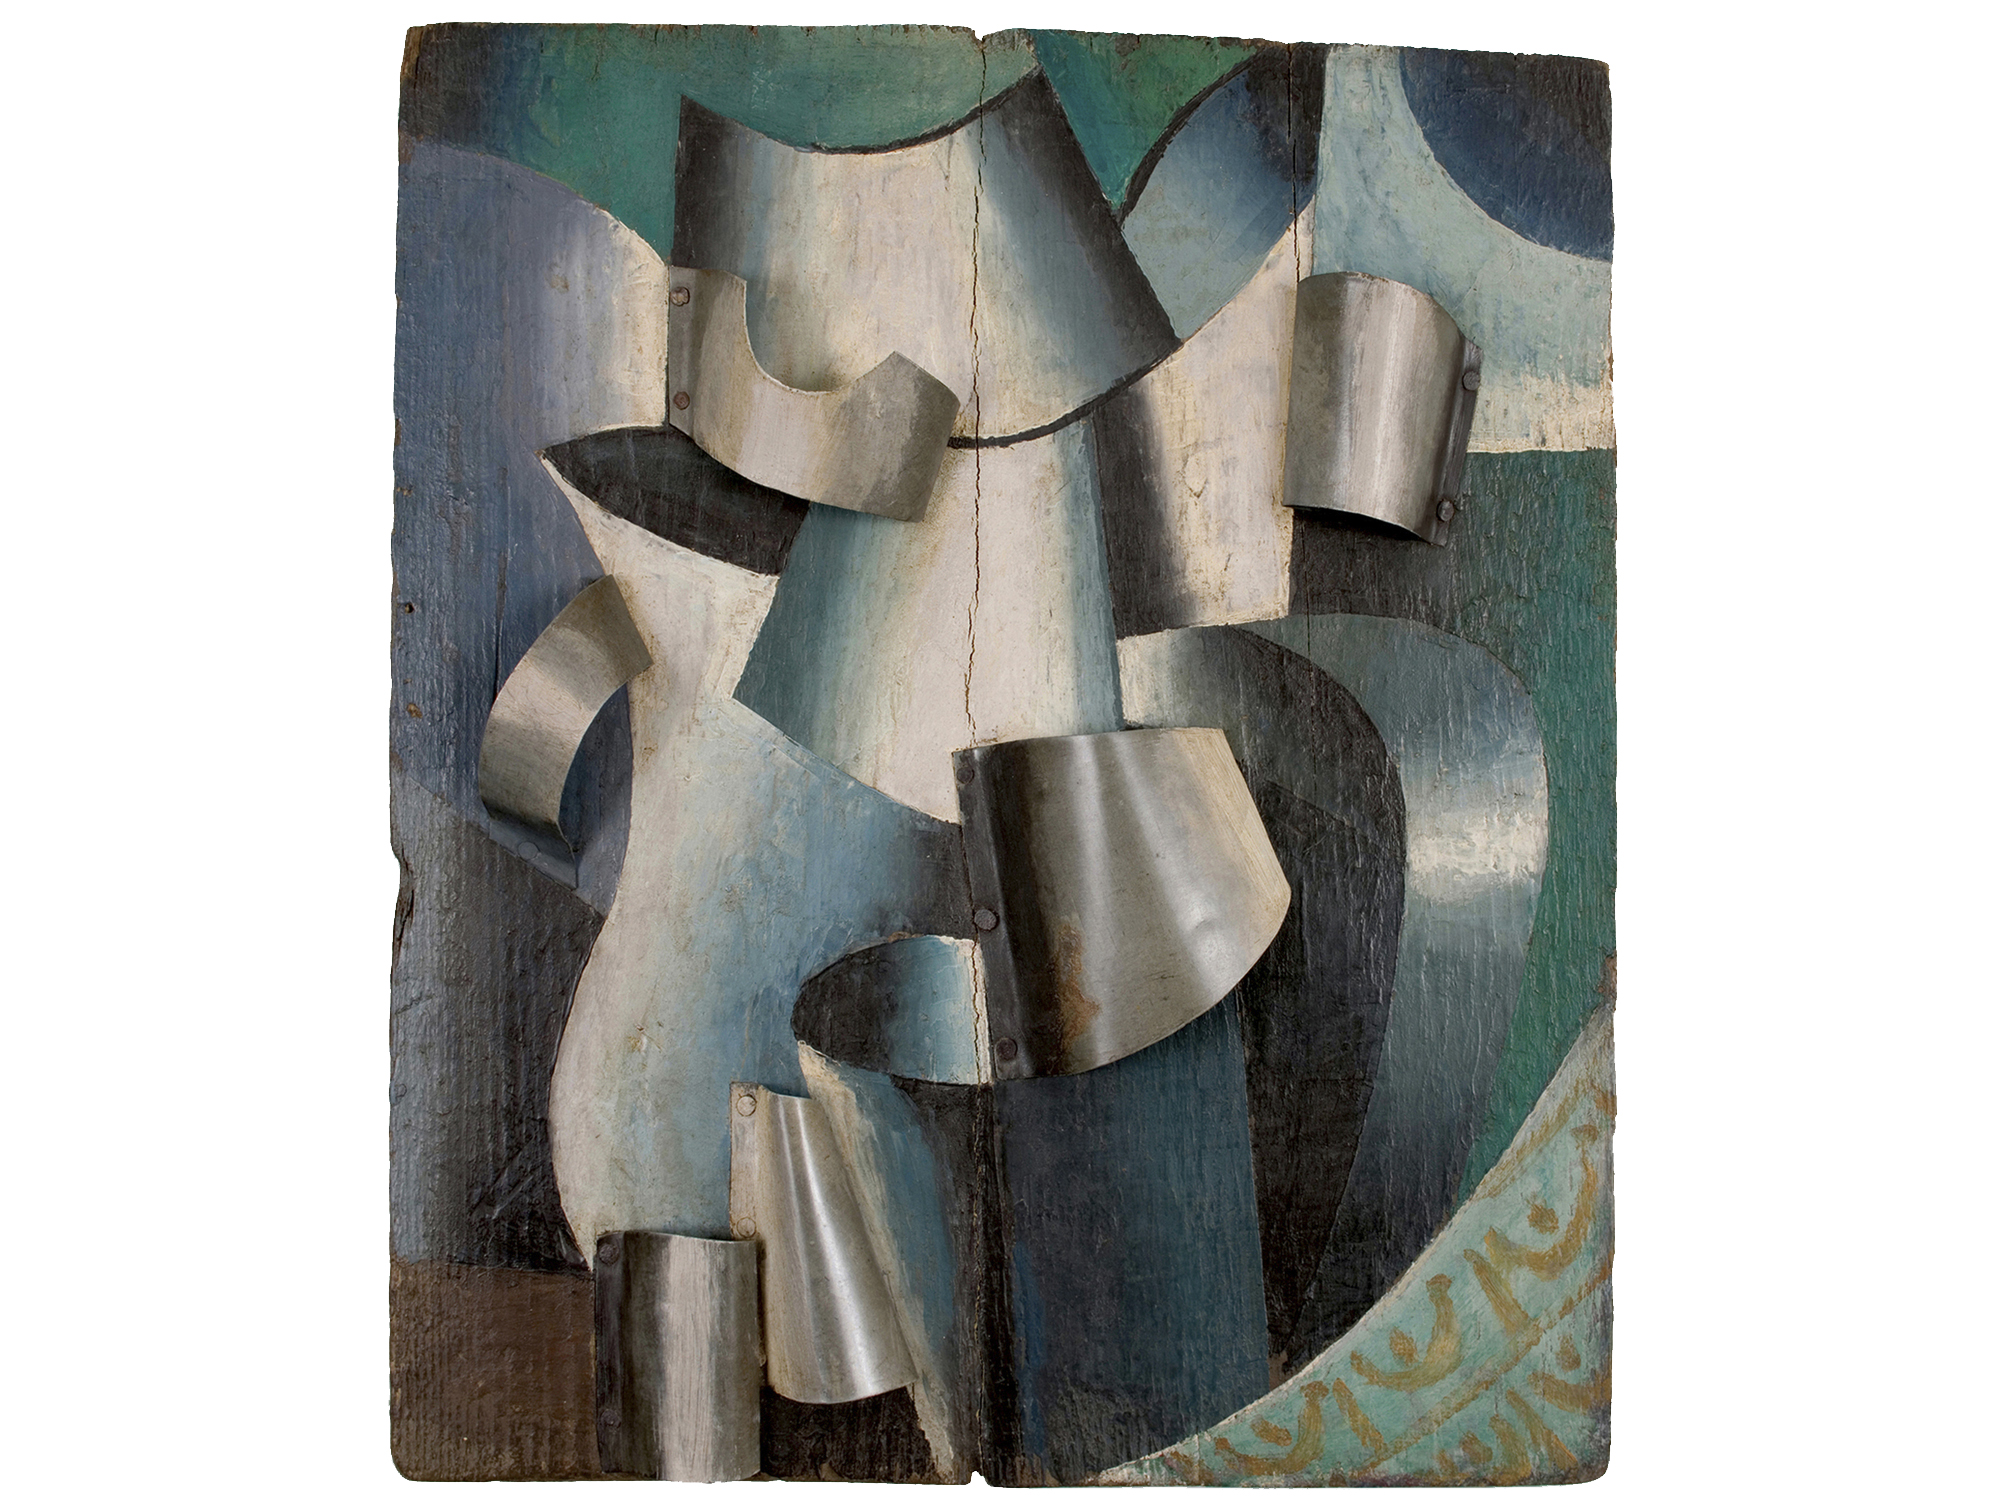 """Unattributed. Unsigned. In the style of Lyubov Popova.Inscription on reverse translates """"Water on a Table""""     Oil and metal on wood, 39 x 33 cm."""